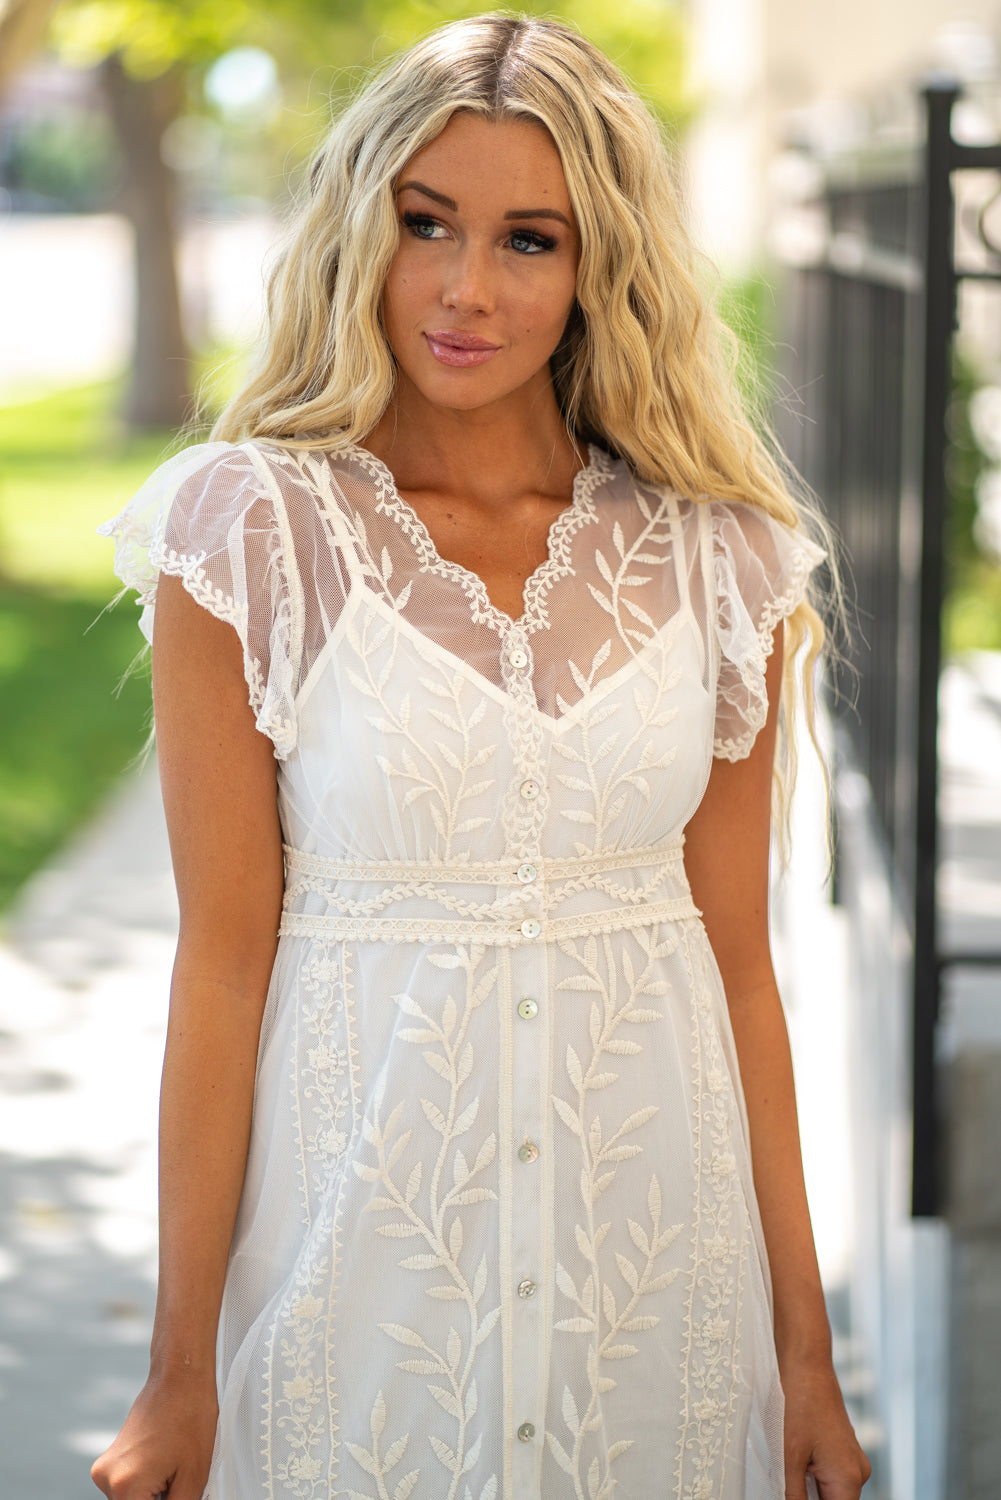 Miss Me  Collection: Summer 2020 Lace Two Piece Dress Color: Ivory White Button Down Self: 80% Cotton, 20% Polyester; Lining: 100% Polyester Style #: MD0294S Dream in style with this sweet dress featuring an all over sheer lace fabric, button down closures at front, inside slip, short flutter sleeves, a v-neck line and a midi cut.  Contact us for any additional measurements or sizing.